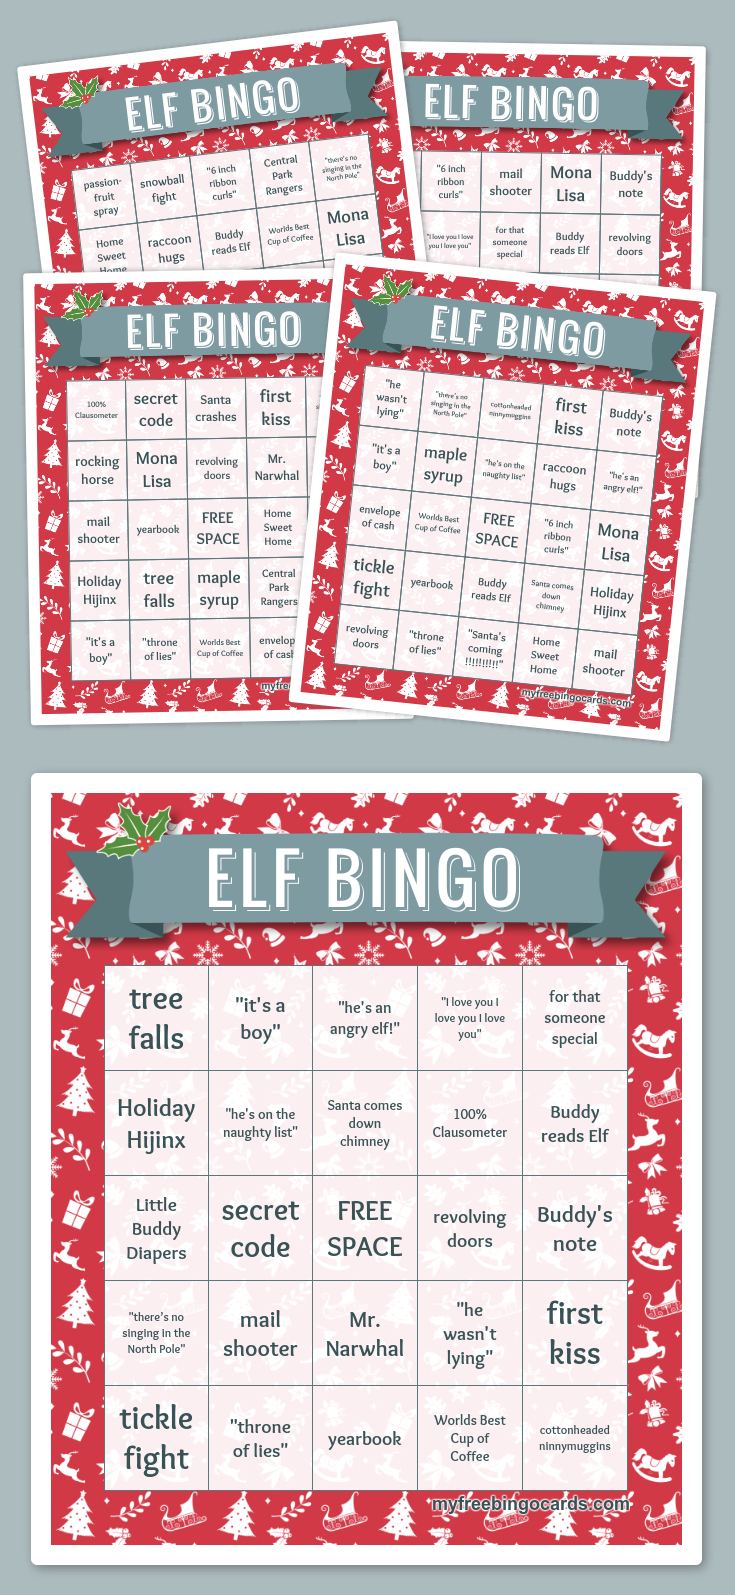 Free Printable Bingo Cards | Free Printable Bingo Cards